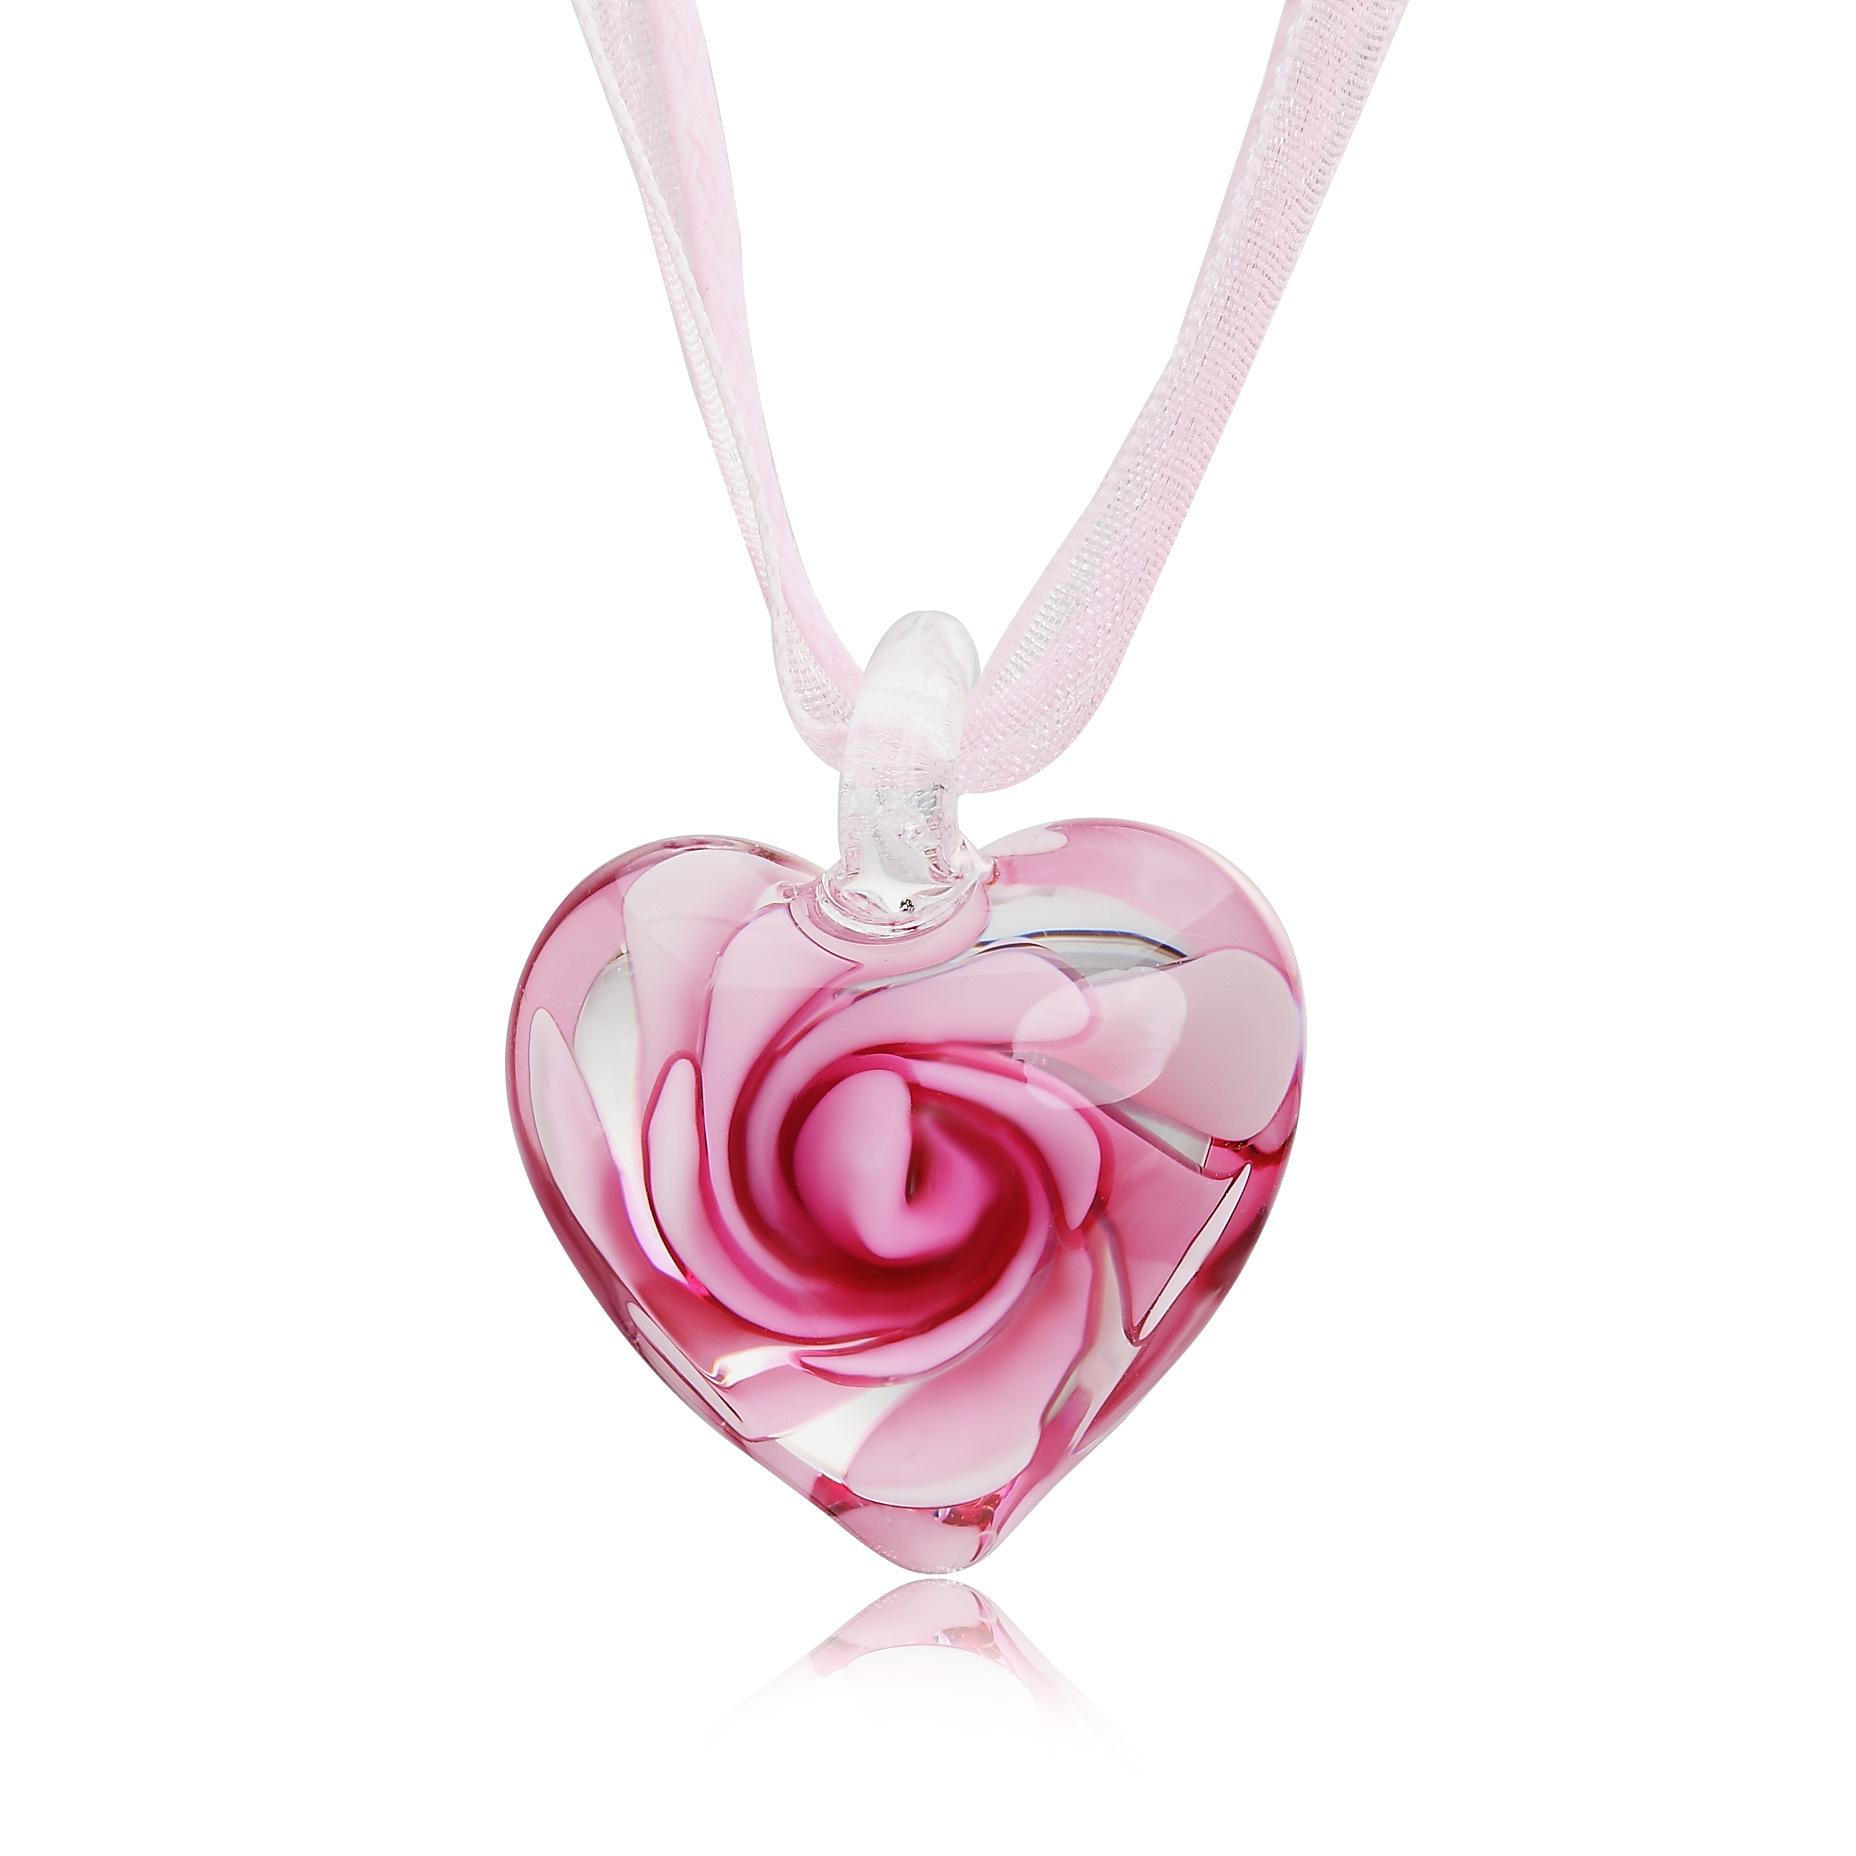 Heart With Rose Flowers Inside Lampwork Murano Italian Venetian Glass Fashion Earrings & Necklace Jewelry Sets Handmade Jewelry Intended For Most Recent Pink Murano Glass Leaf Pendant Necklaces (Gallery 25 of 25)